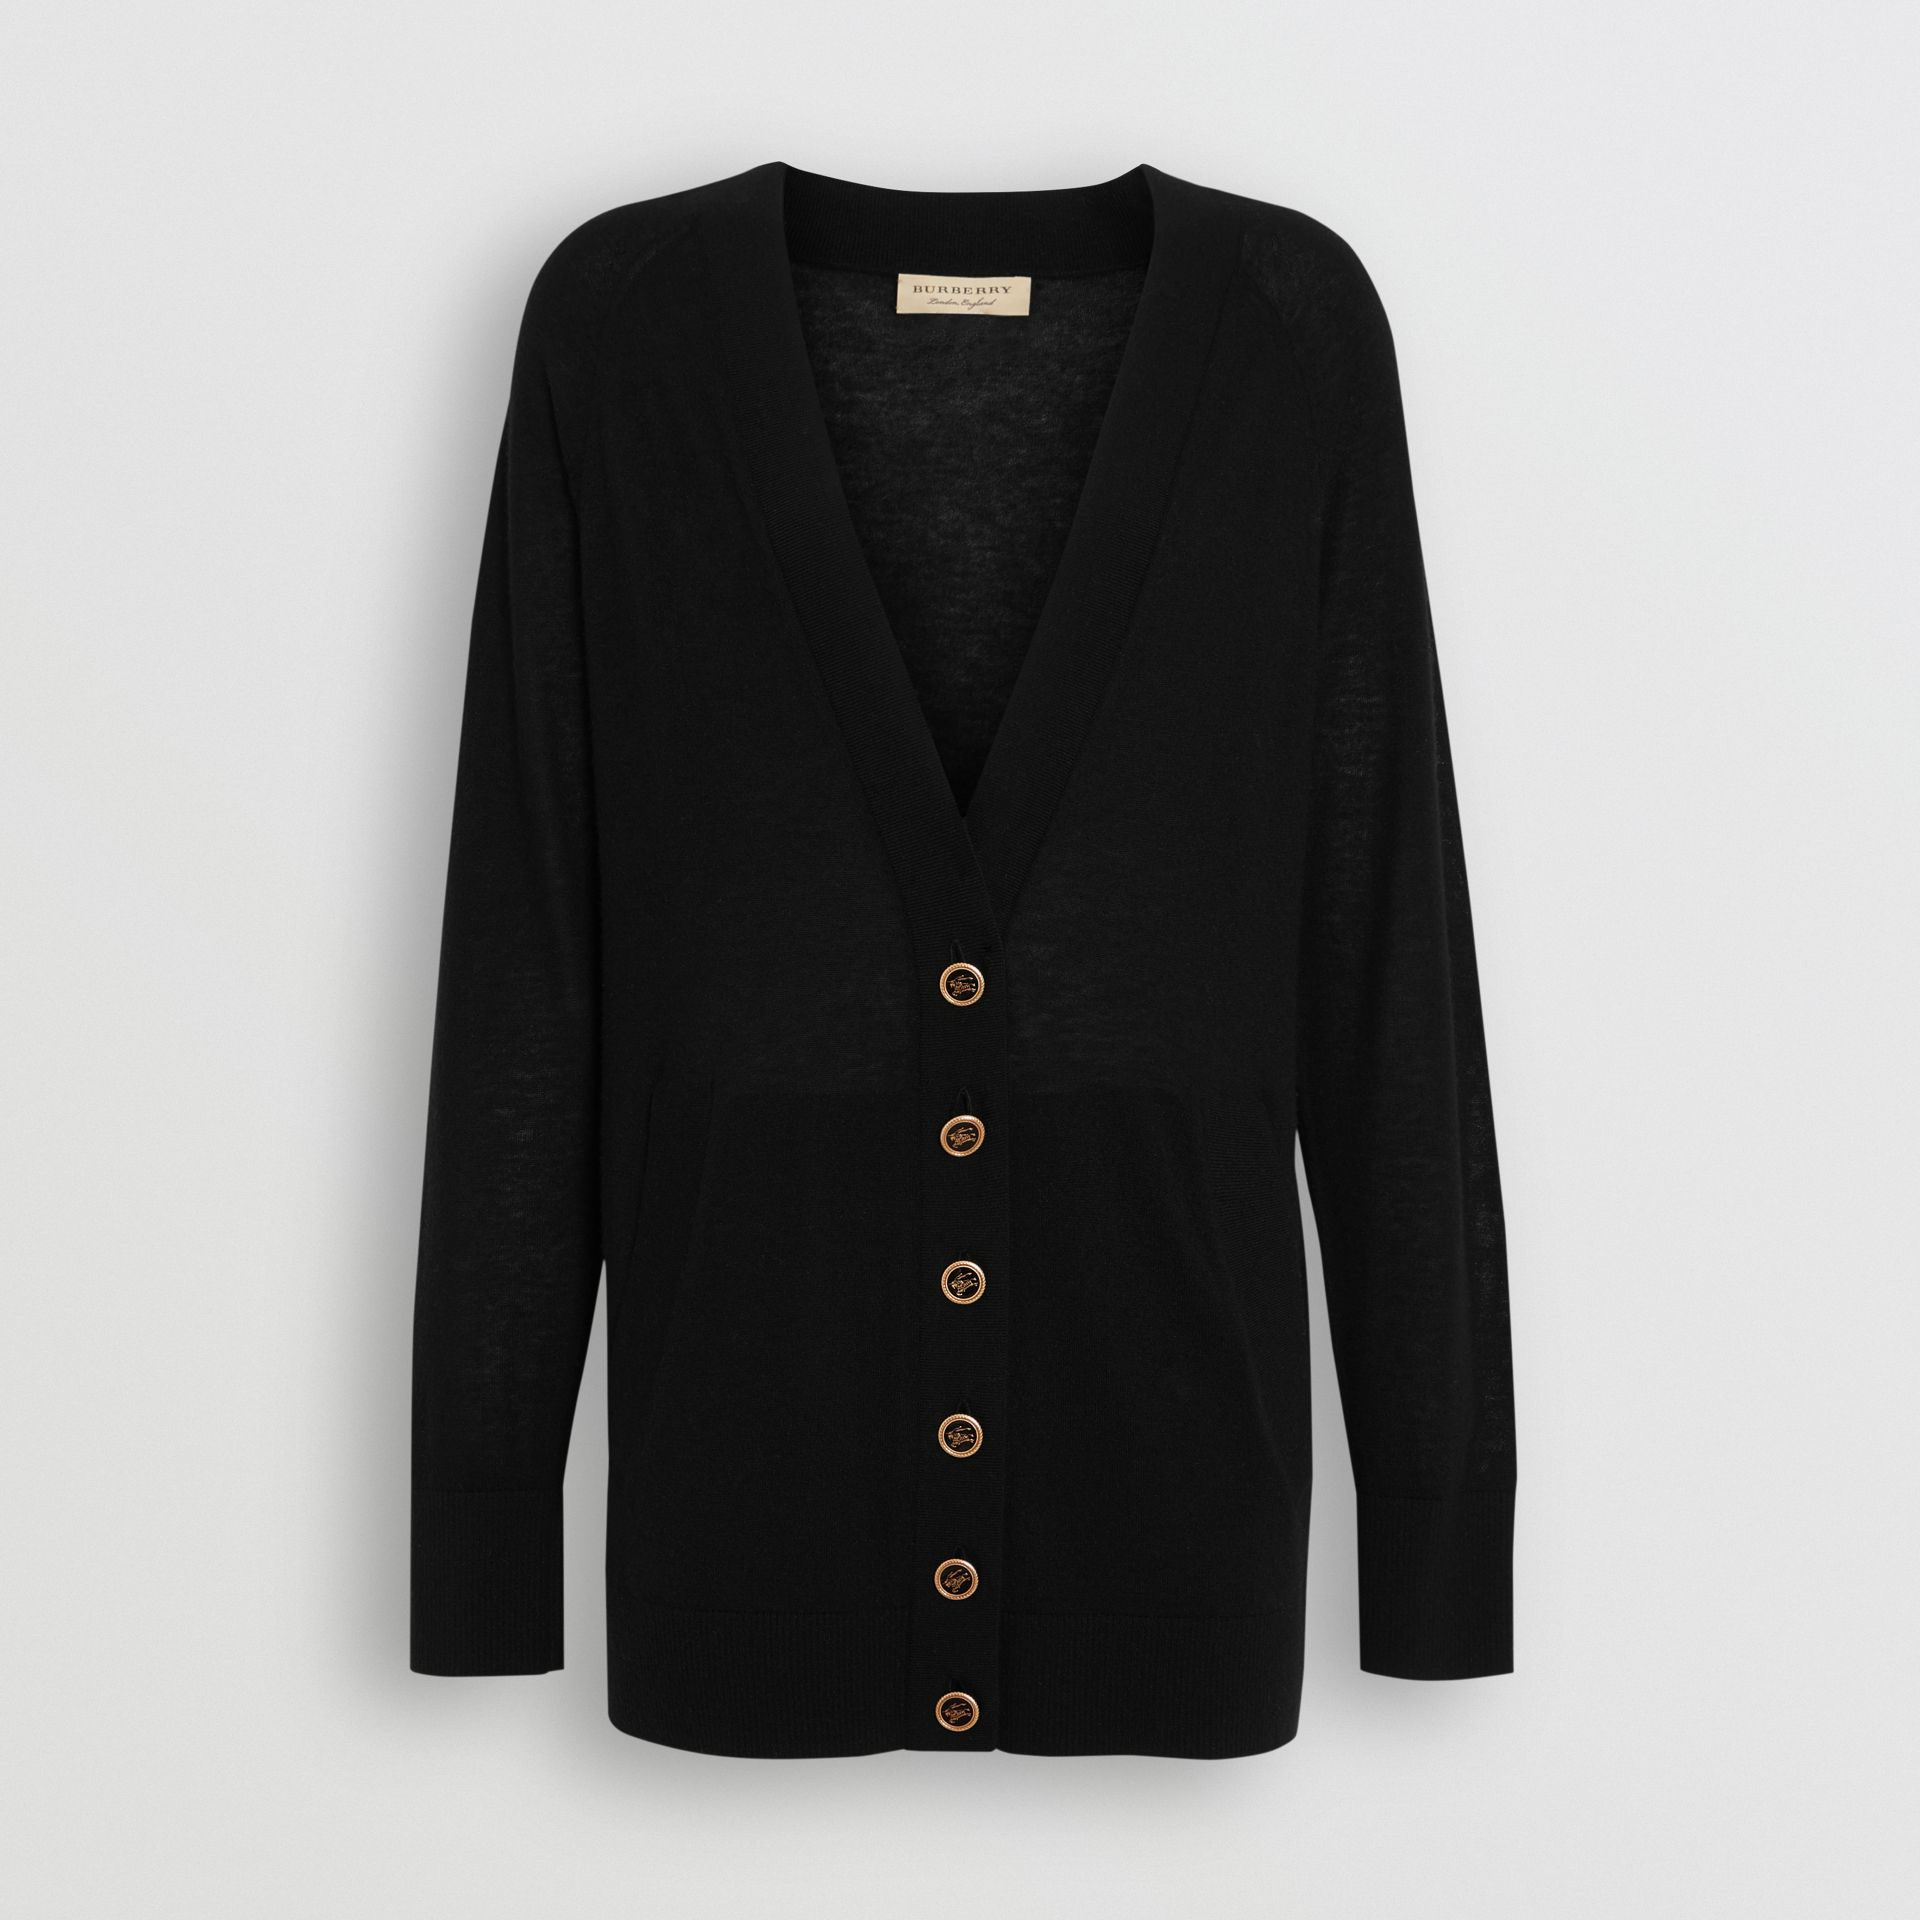 Cashmere V-neck Cardigan in Black - Women | Burberry Canada - gallery image 3